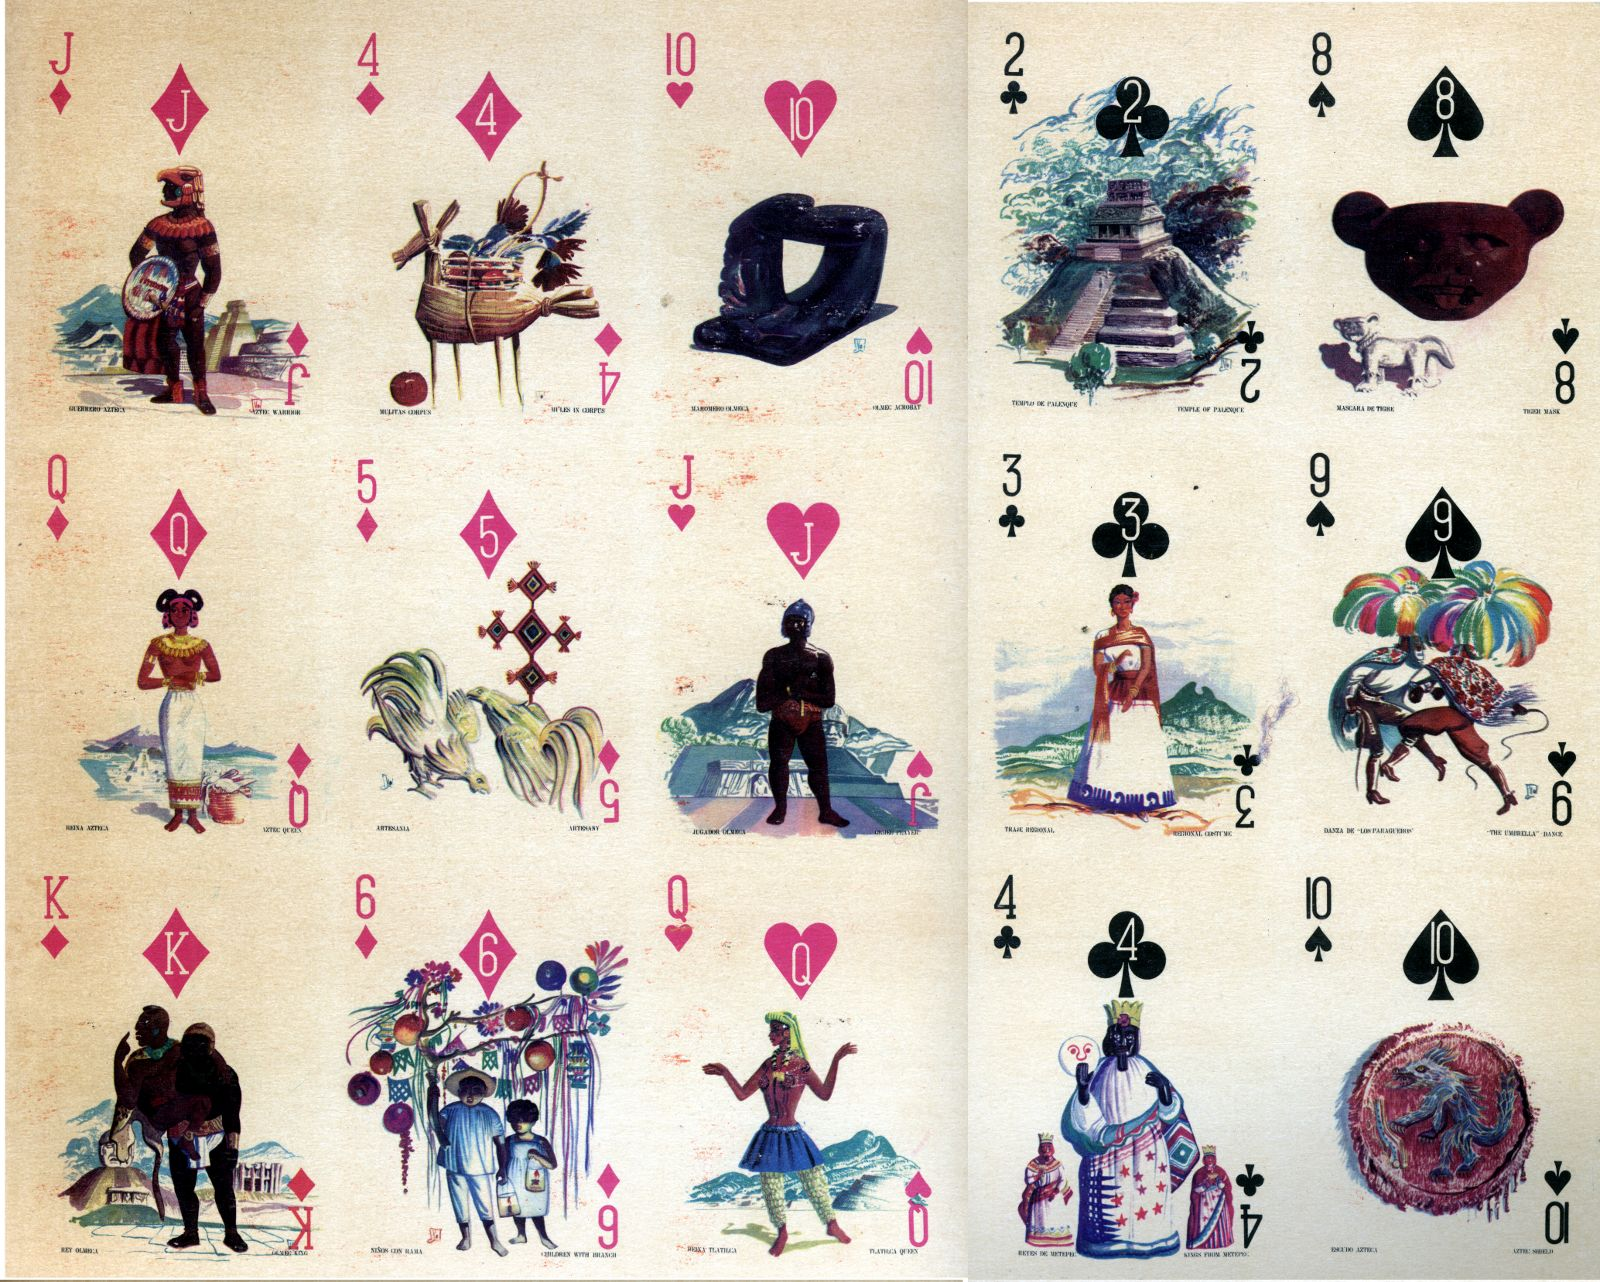 Special pack for Aeronaves de Mexico S.A., designed by Ramón Valdiosera Berman, mid-1960s